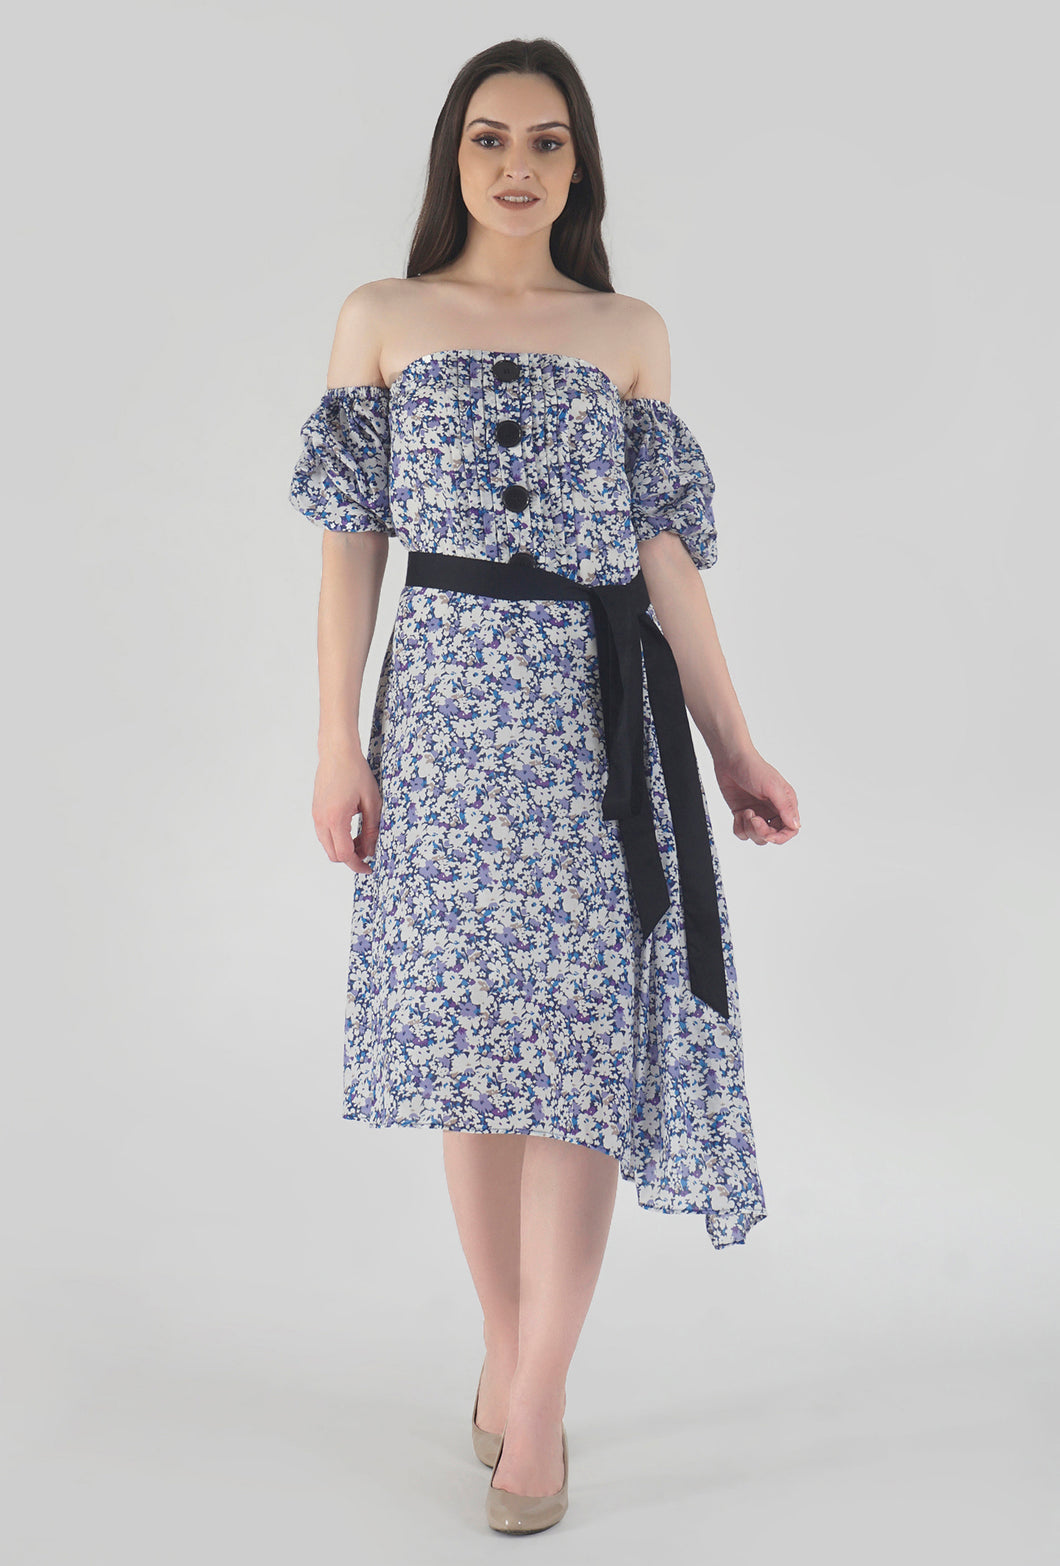 Floral Print Pleated Off Shoulder Asymmetrical Ionic Dress style